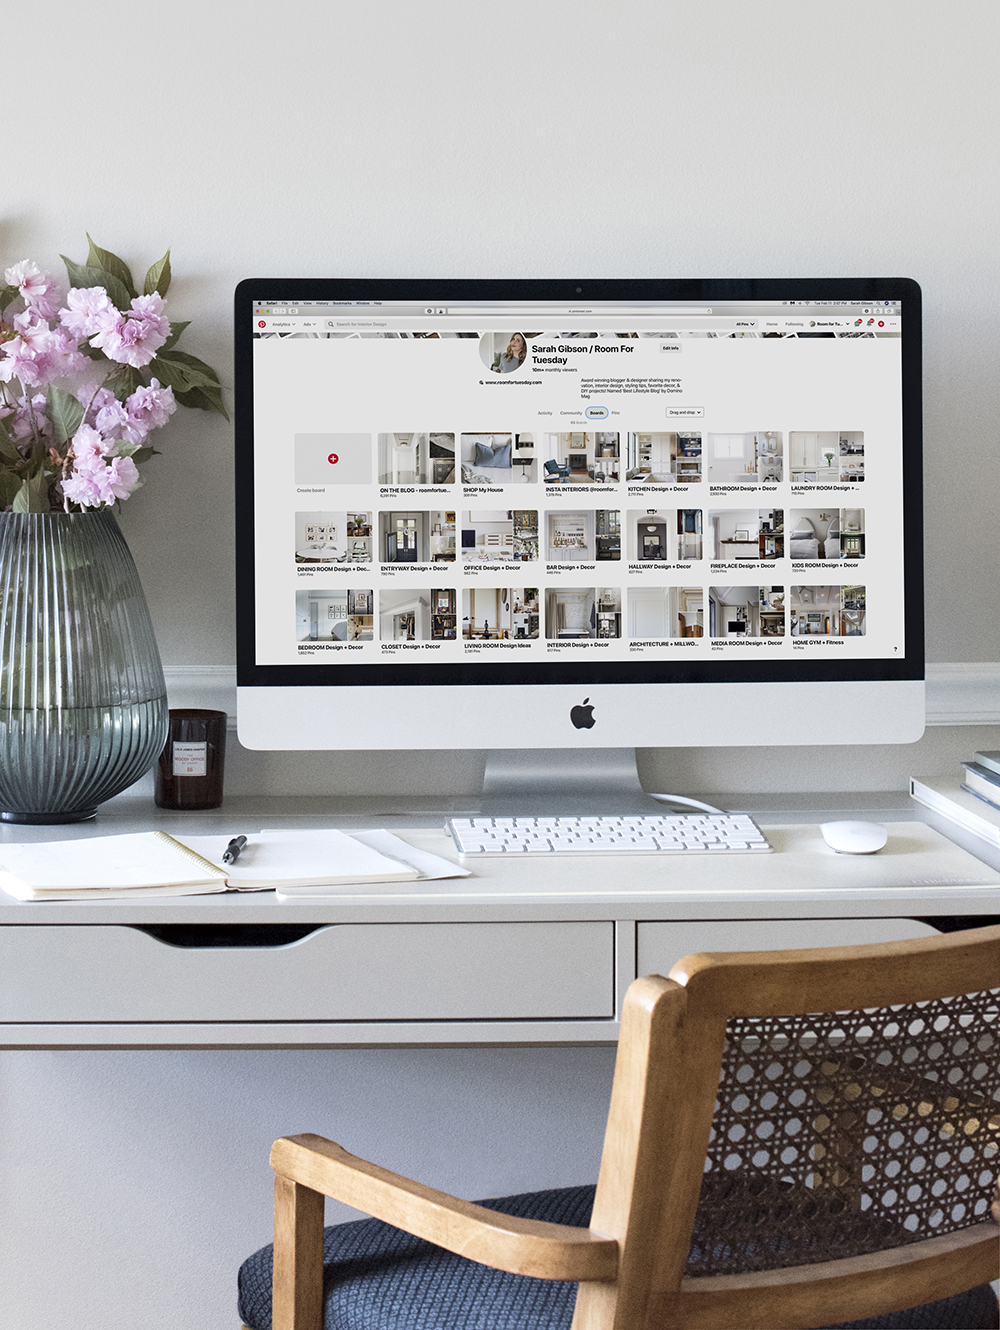 Translating Pinterest In Real Life - roomfortuesday.com